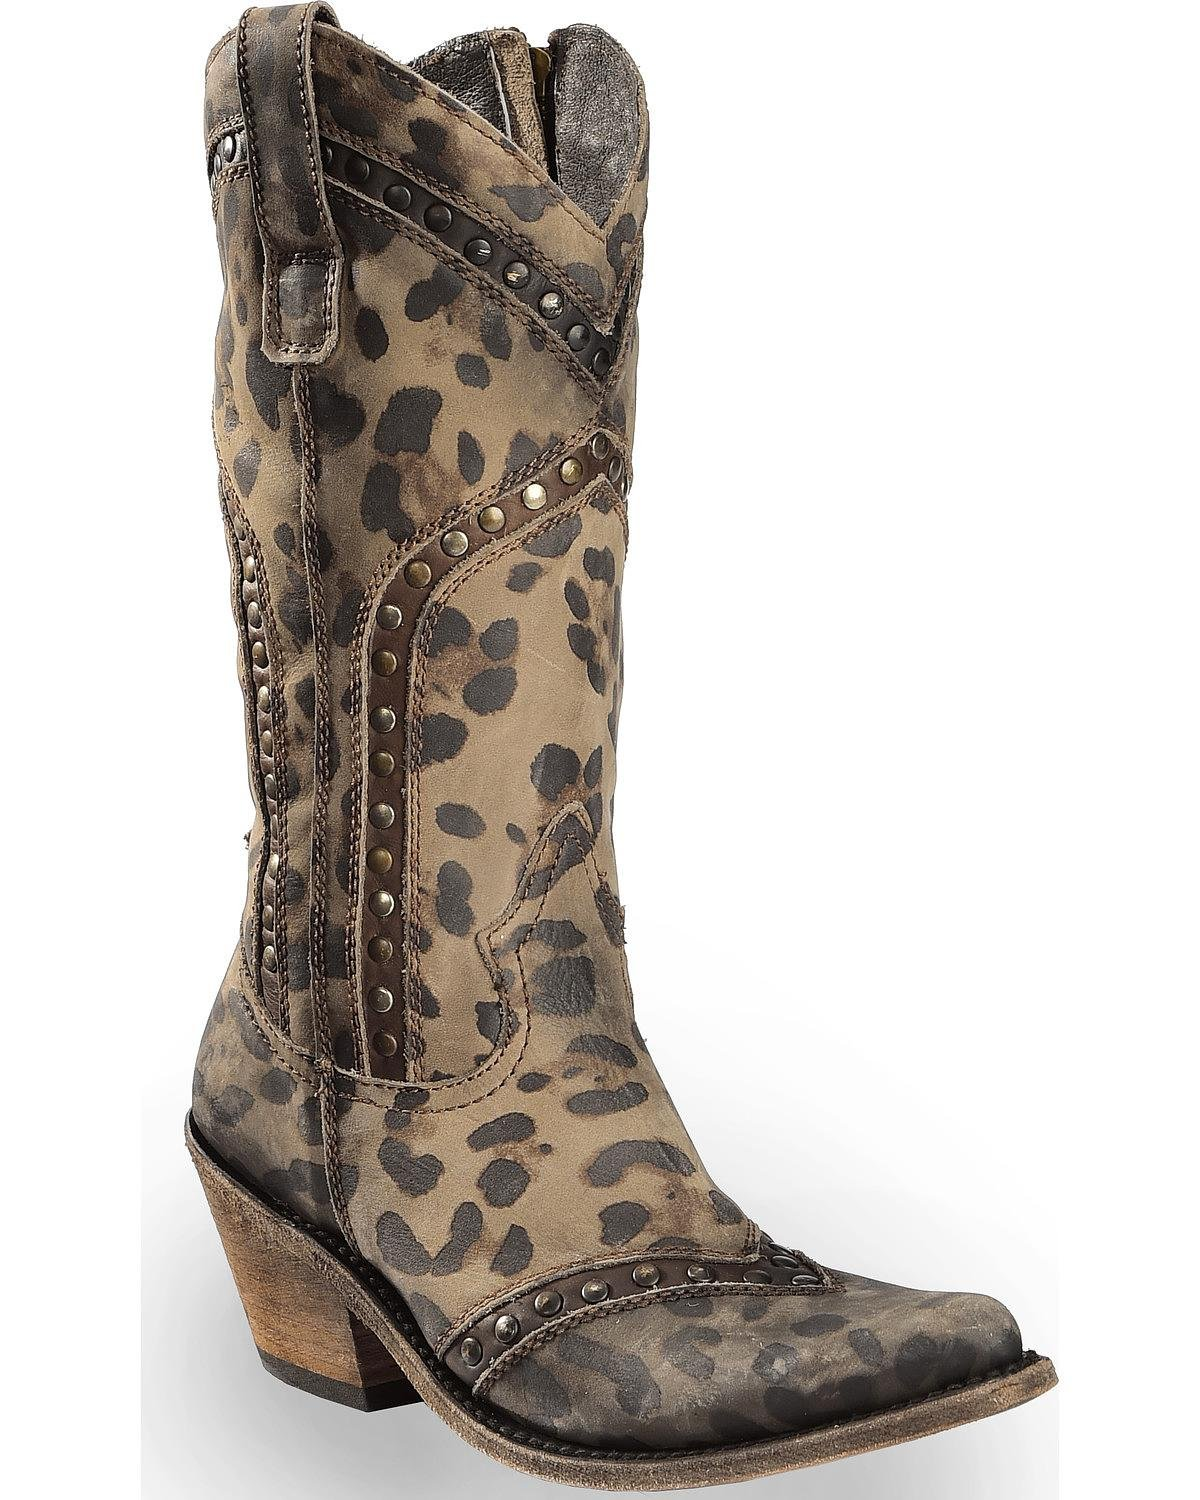 Liberty Black Women's Chita T-Moro Western Boot Pointed Toe Cheetah 8.5 M